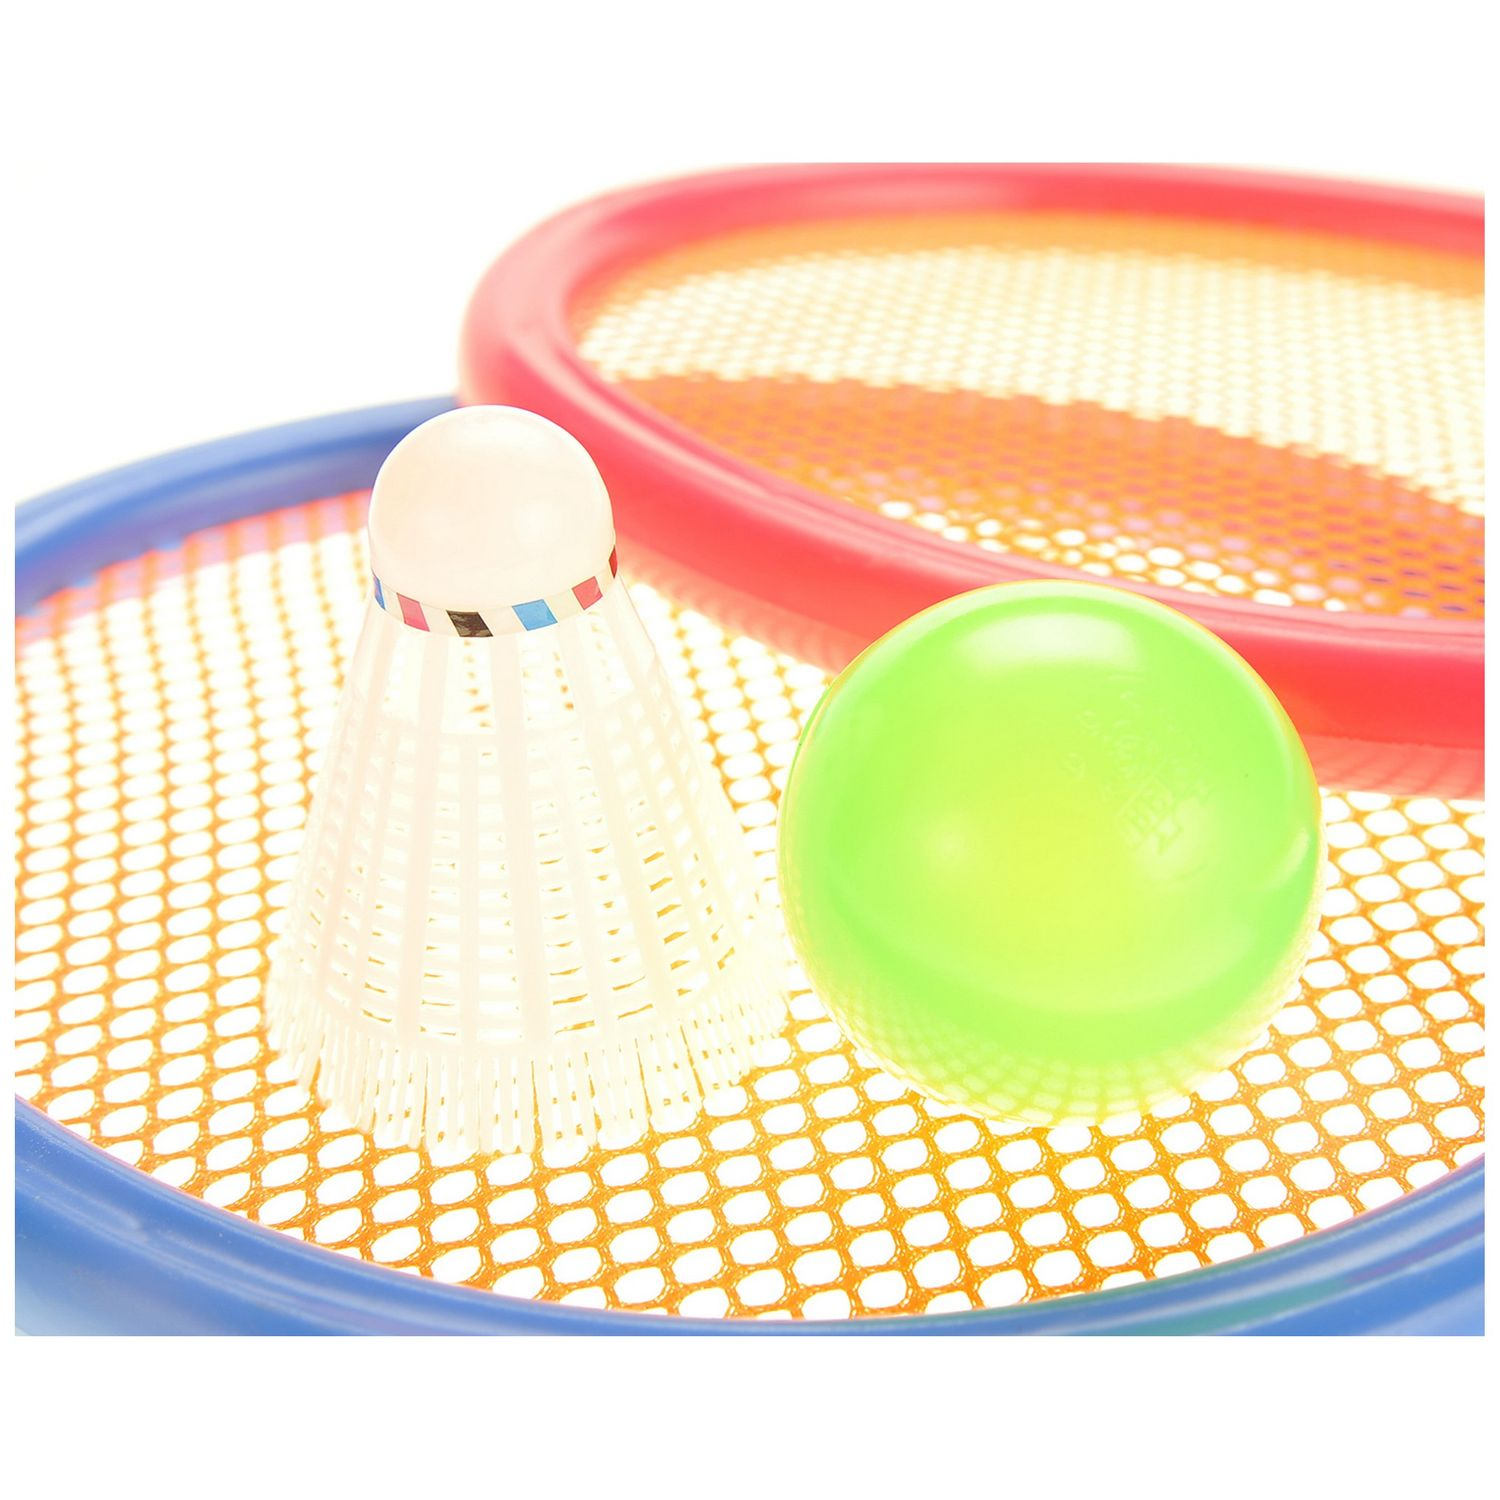 Badminton And Tennis Play Set With Easy To Grip Colorful Rac by